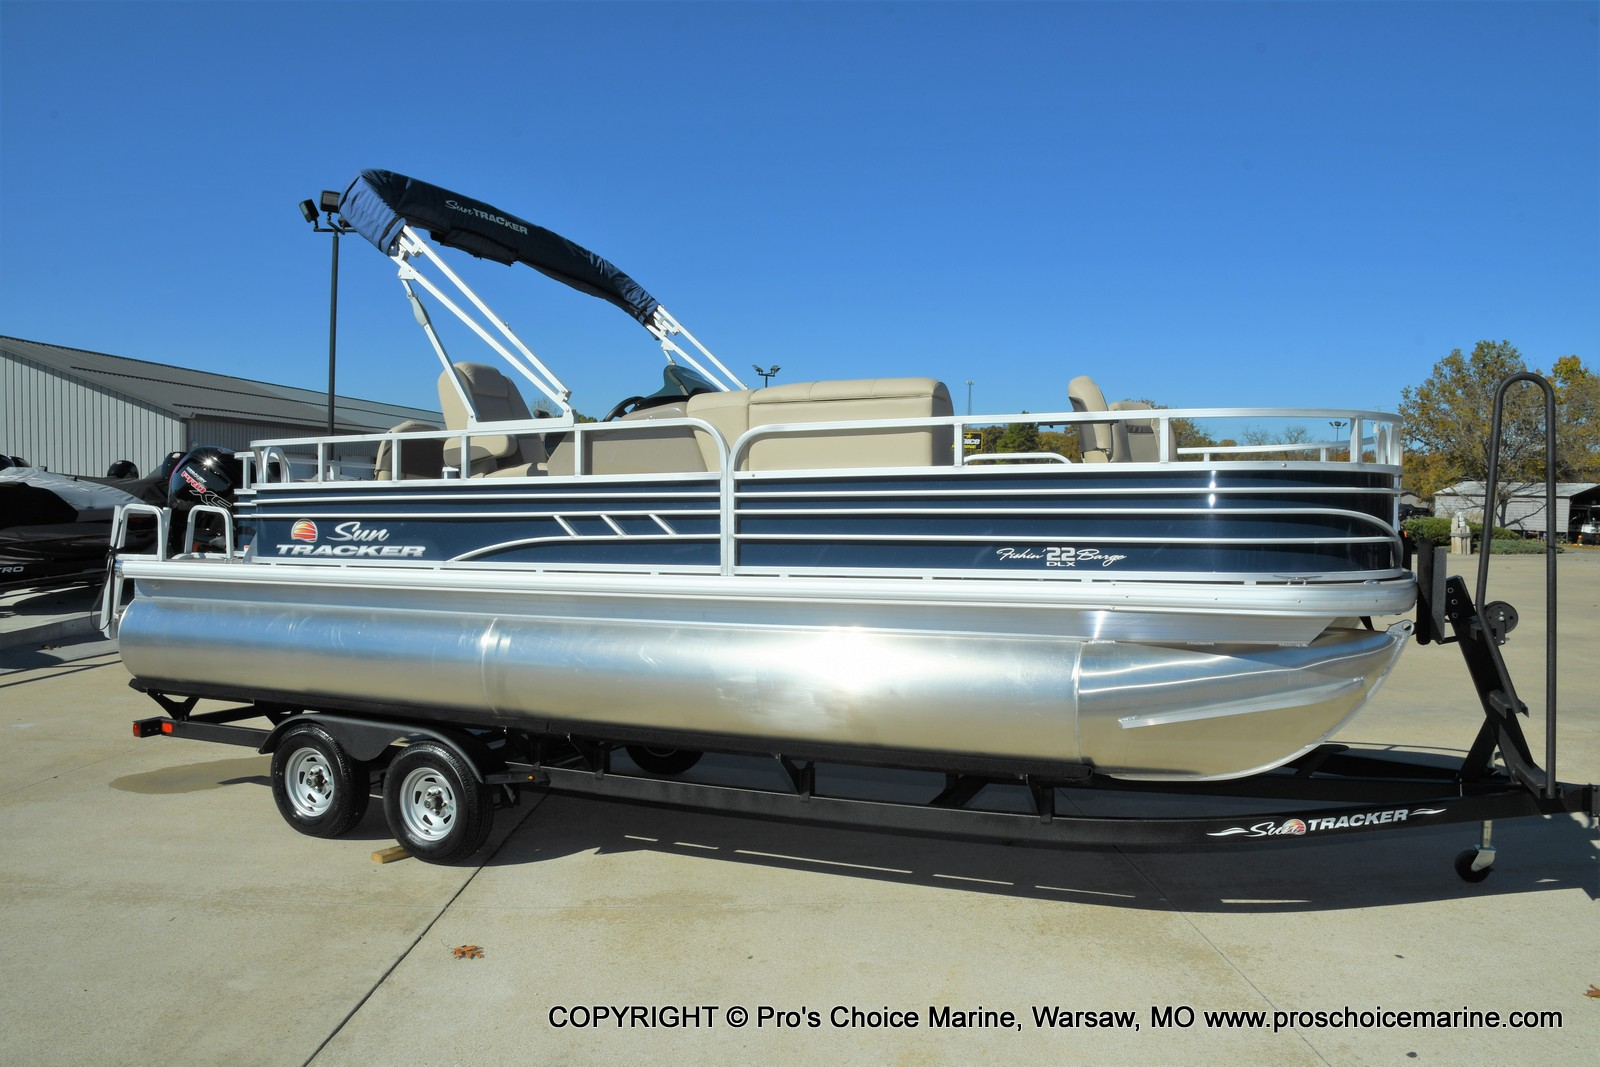 2021 Sun Tracker boat for sale, model of the boat is FISHIN BARGE 22 DLX & Image # 1 of 50